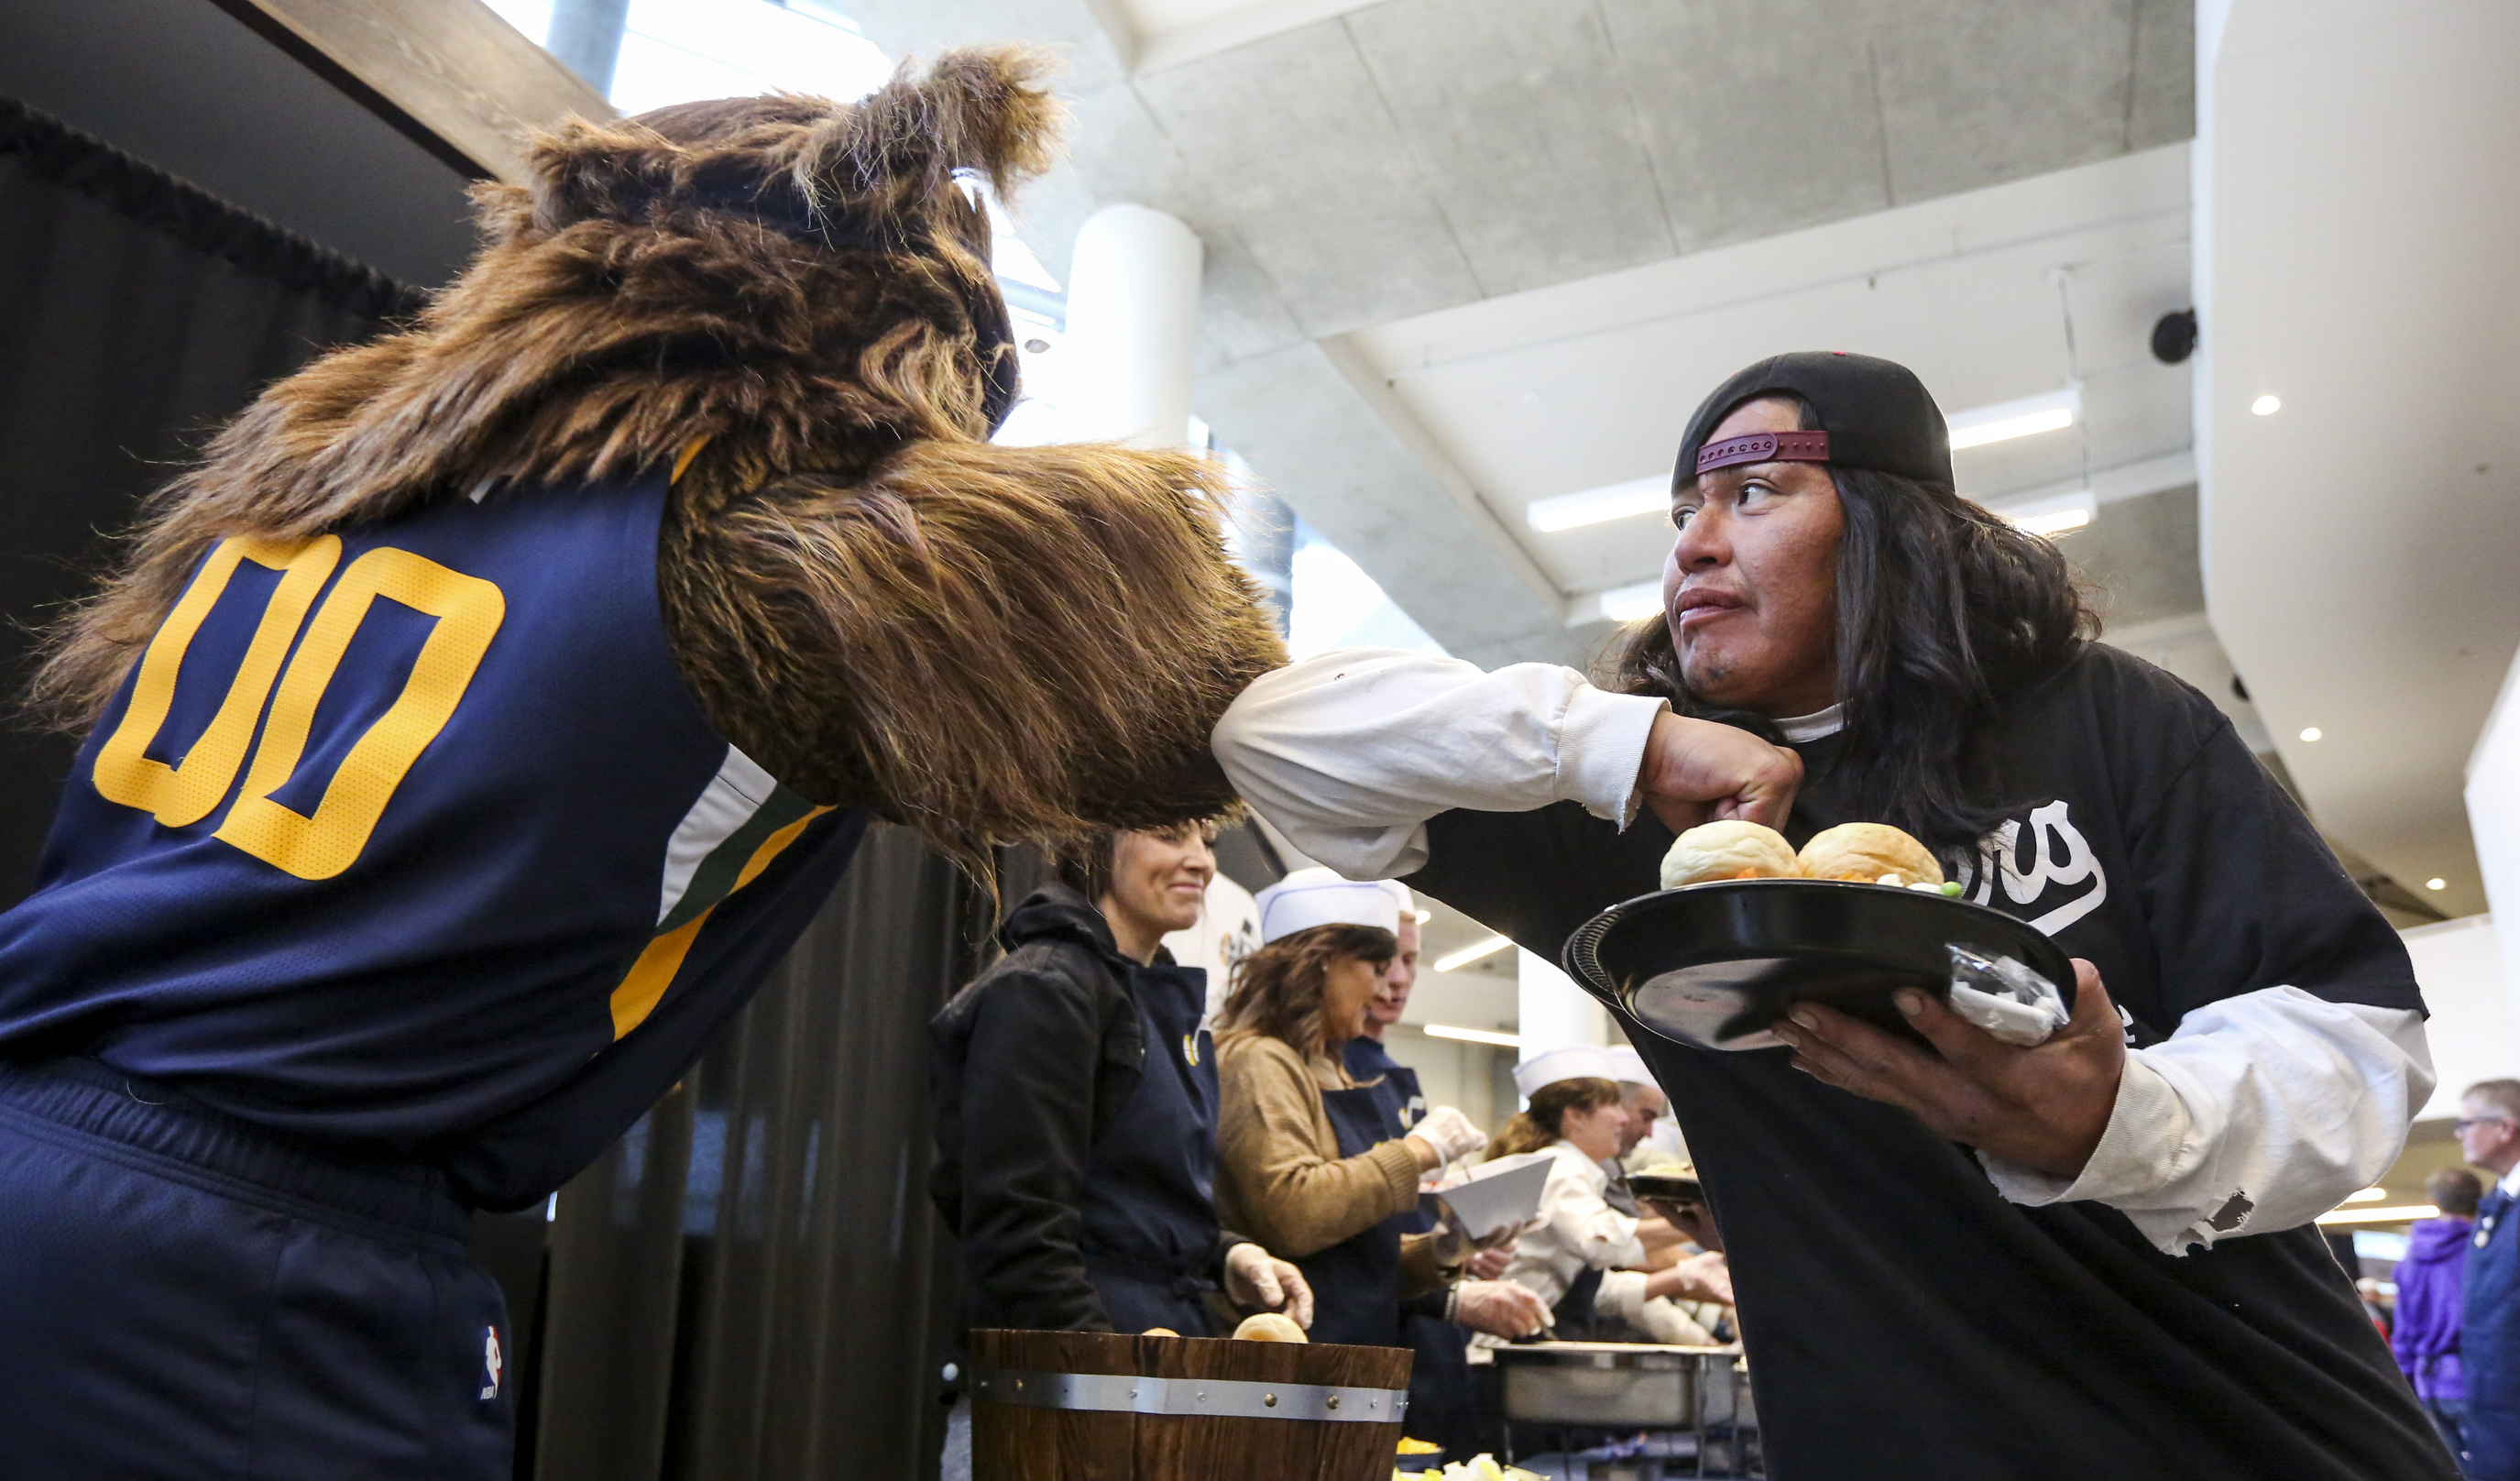 """Julian, right, bumps elbows with the Jazz Bear after receiving his Thanksgiving meal during the 21st annual """"We Care - We Share"""" event for the homeless and low-income individuals at the Vivint Smart Home Arena in Salt Lake City on Monday, Nov. 25, 2019. The Salt Lake Mission was also on hand to provide coats, shoes and cold-weather apparel to those in attendance."""